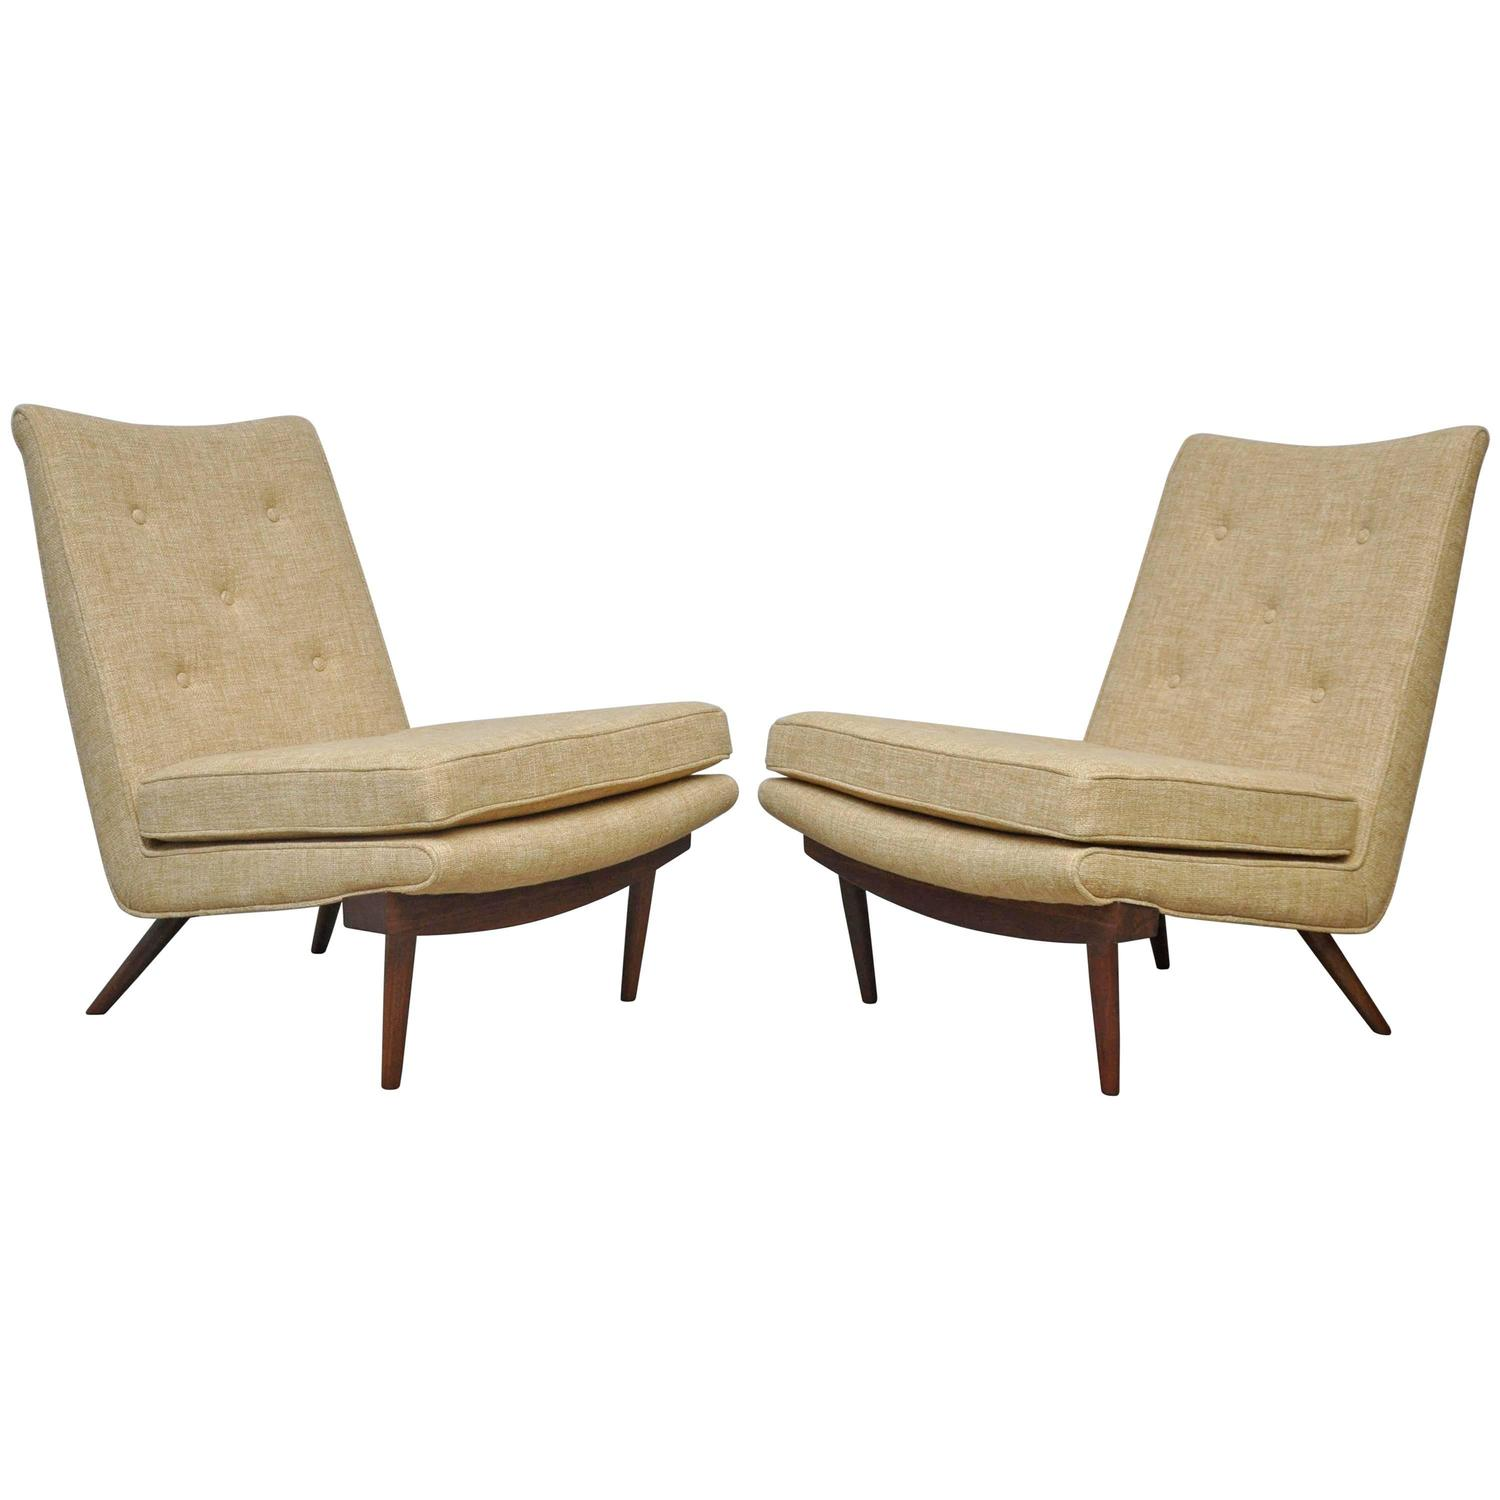 white leather slipper chair dining chairs uk george nakashima lounge at 1stdibs